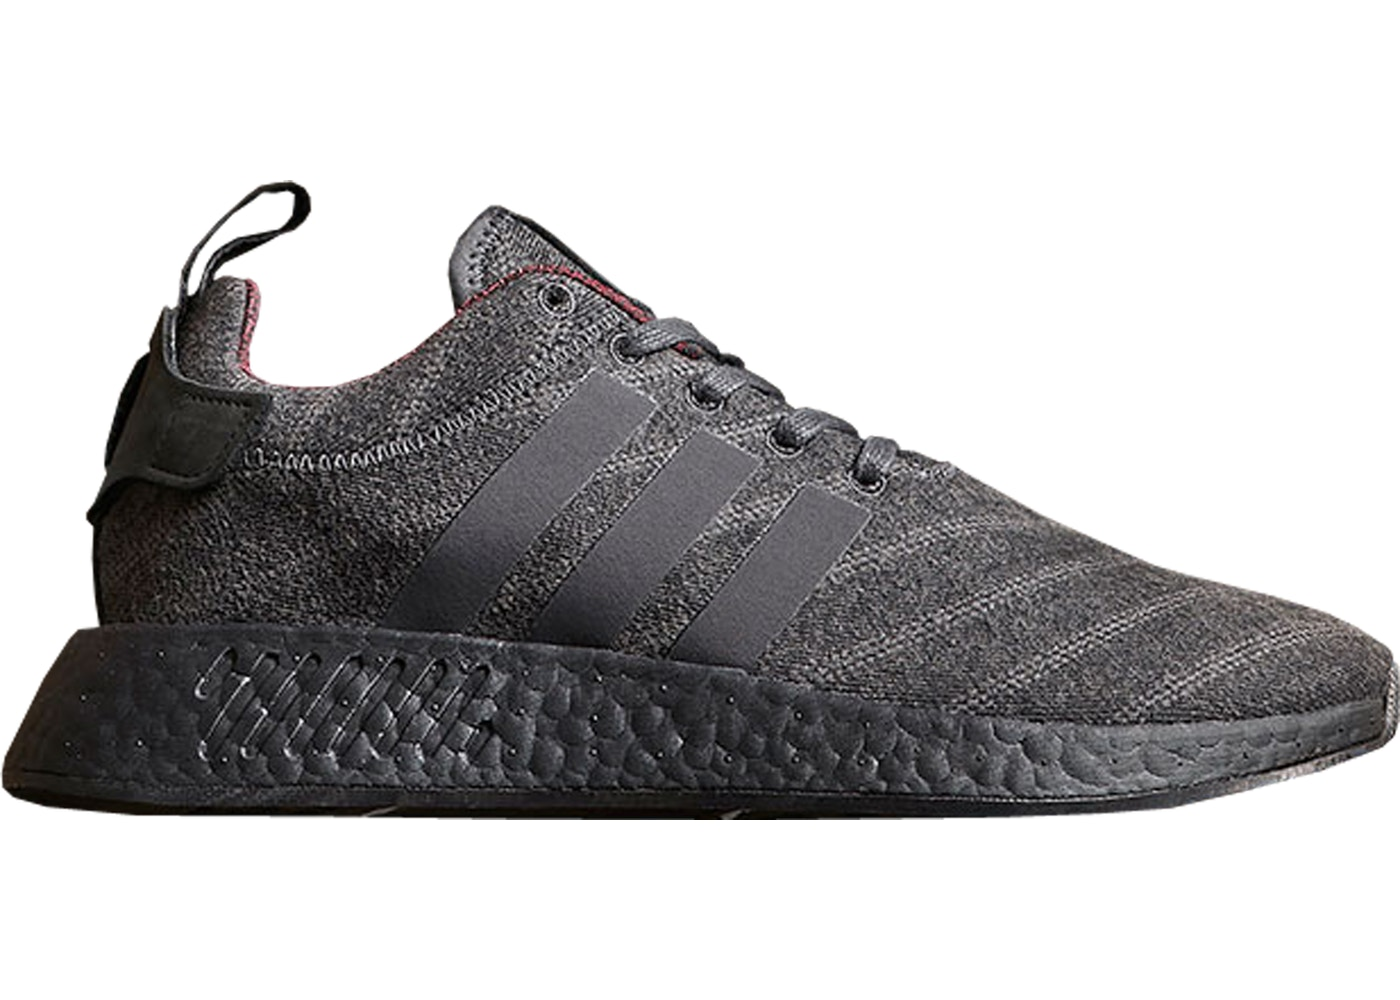 2804c665718d8 adidas NMD R2 Size  Henry Poole - CQ2015